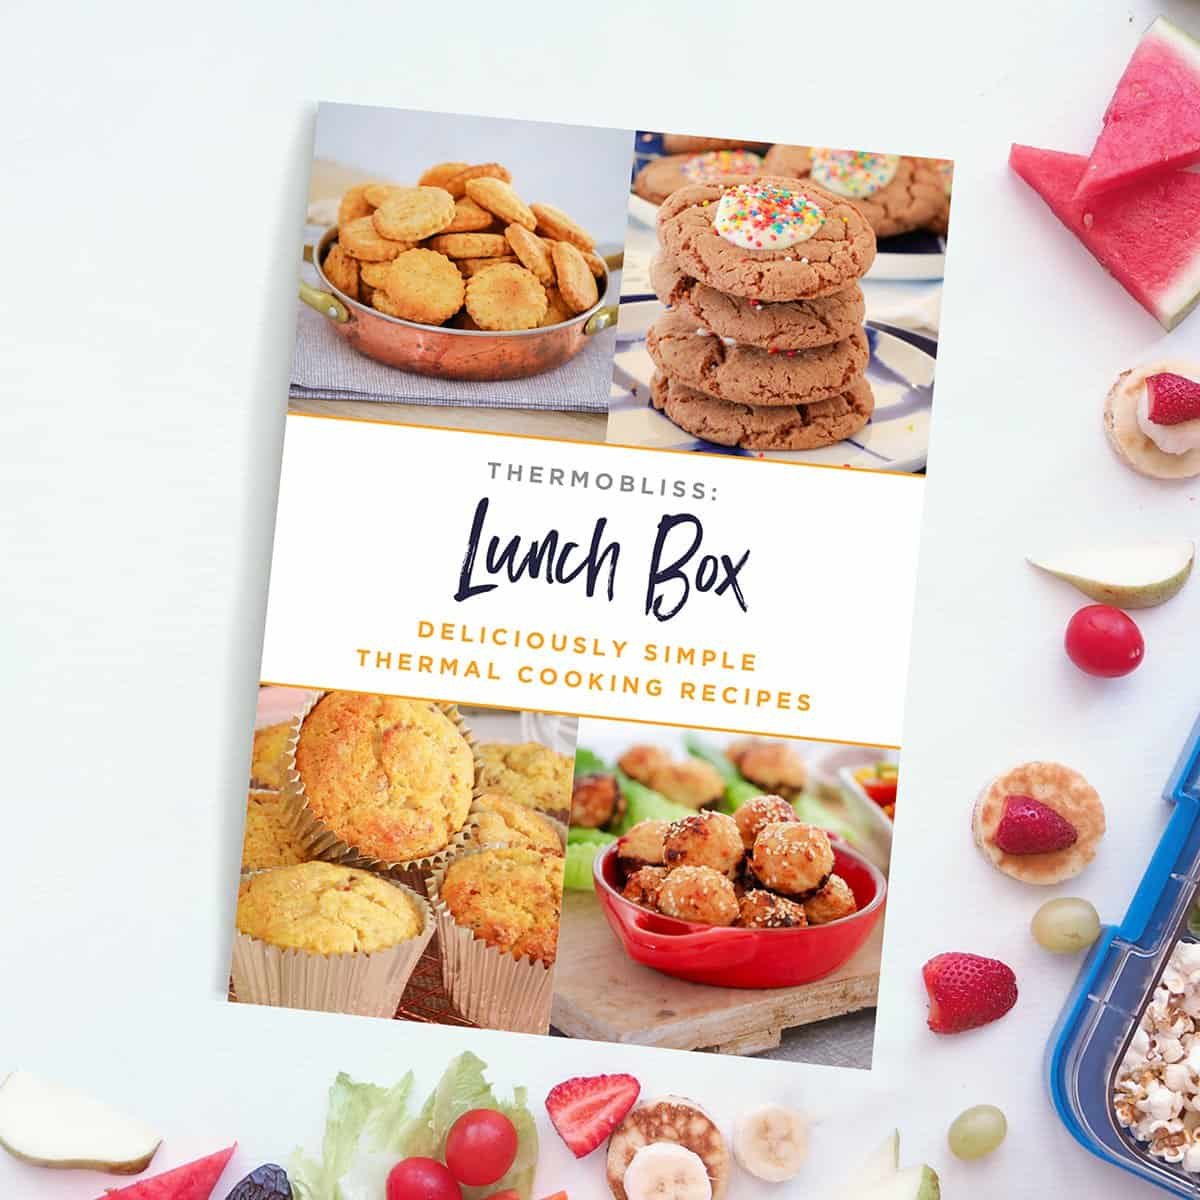 A ThermoBliss Lunch Box recipe book